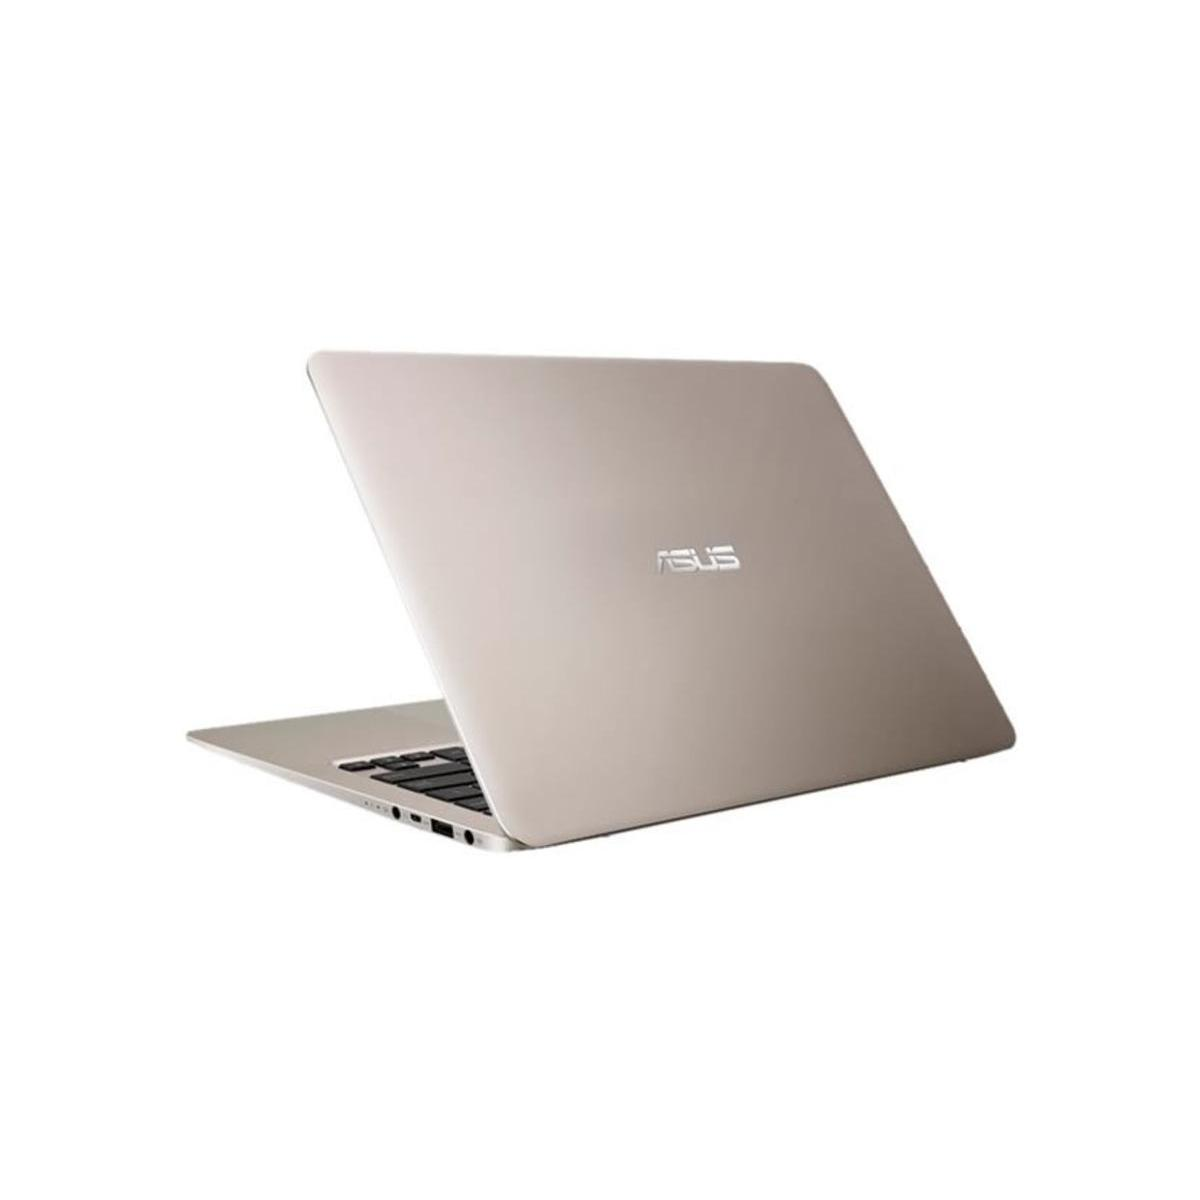 "ASUS ZenBook UX305UA 13.3"" Core i5 2,3 GHz - SSD 256 GB - RAM 8 GB - QWERTY"